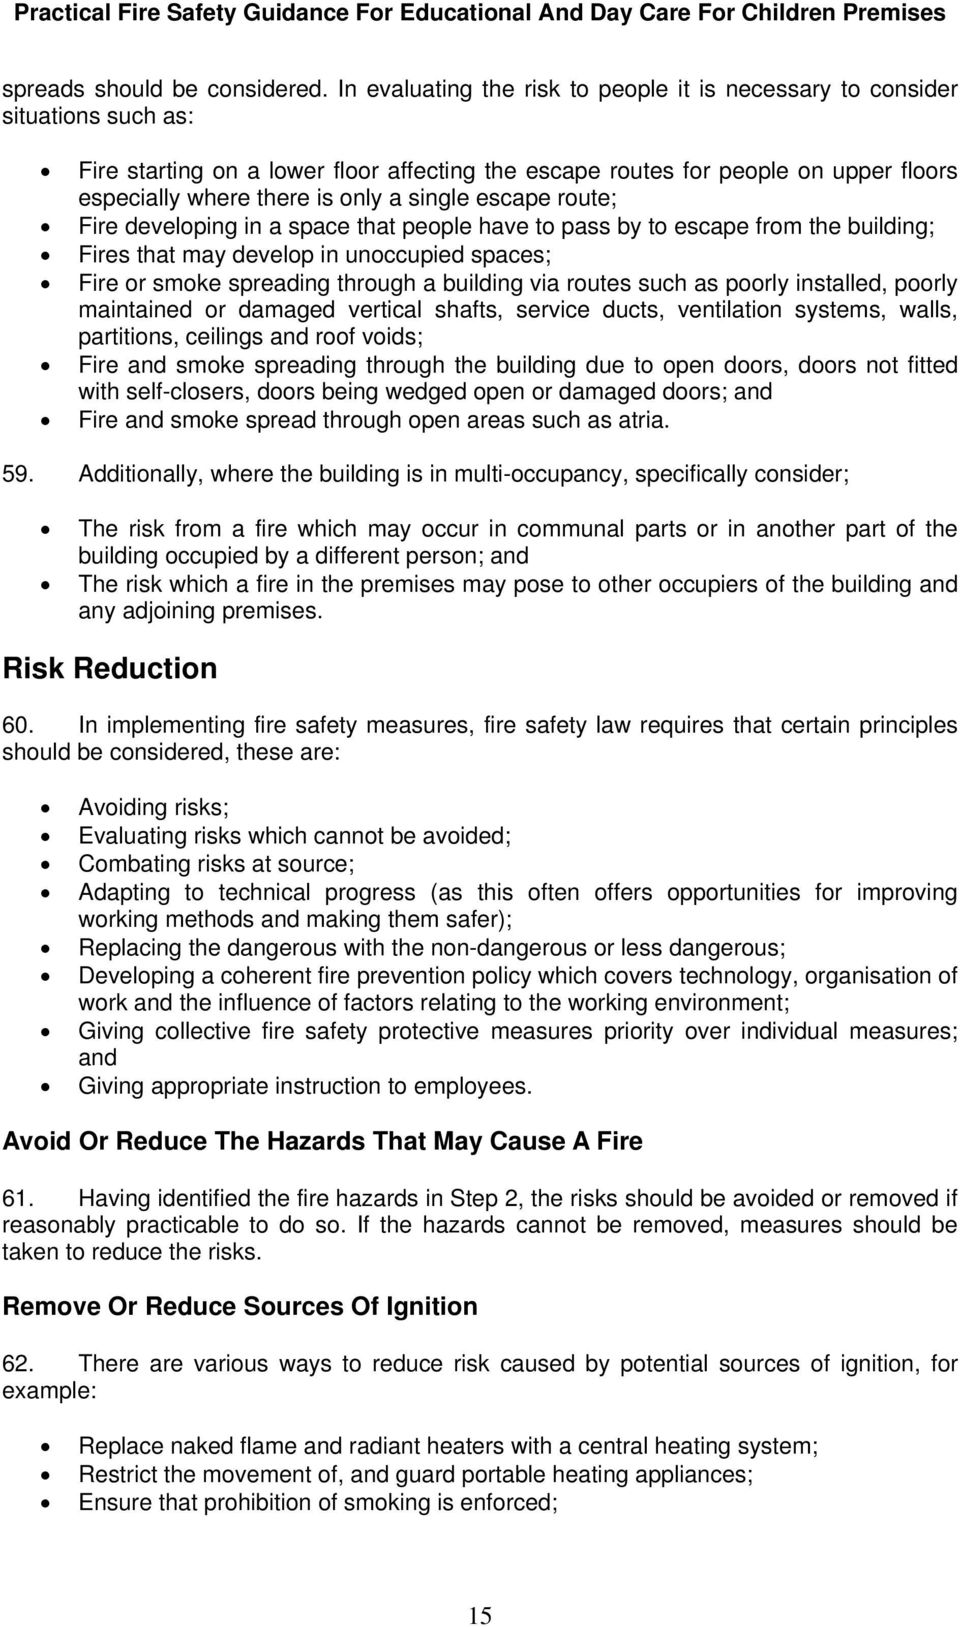 single escape route; Fire developing in a space that people have to pass by to escape from the building; Fires that may develop in unoccupied spaces; Fire or smoke spreading through a building via